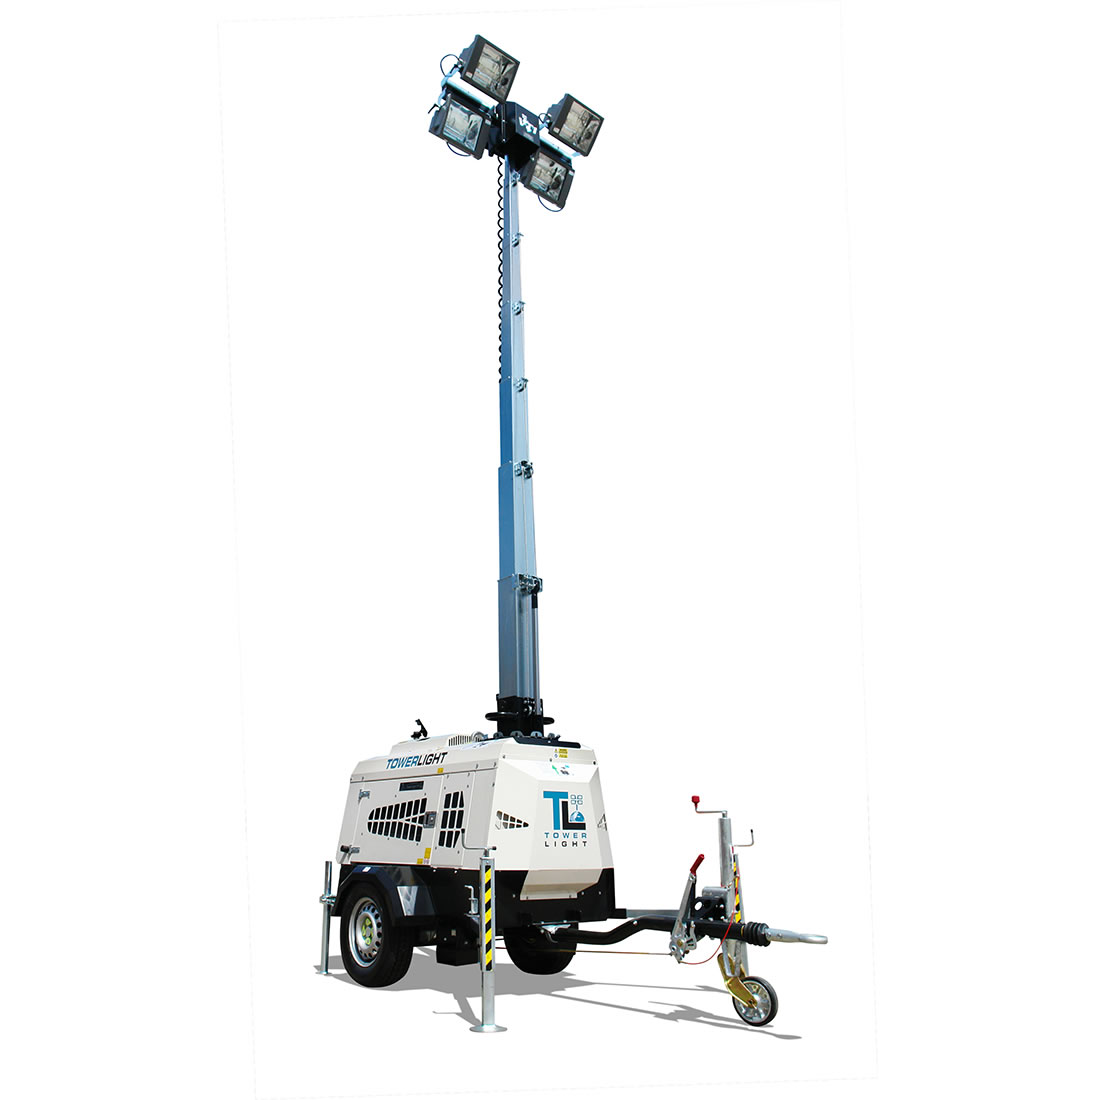 4Hd Halide Lighting Tower